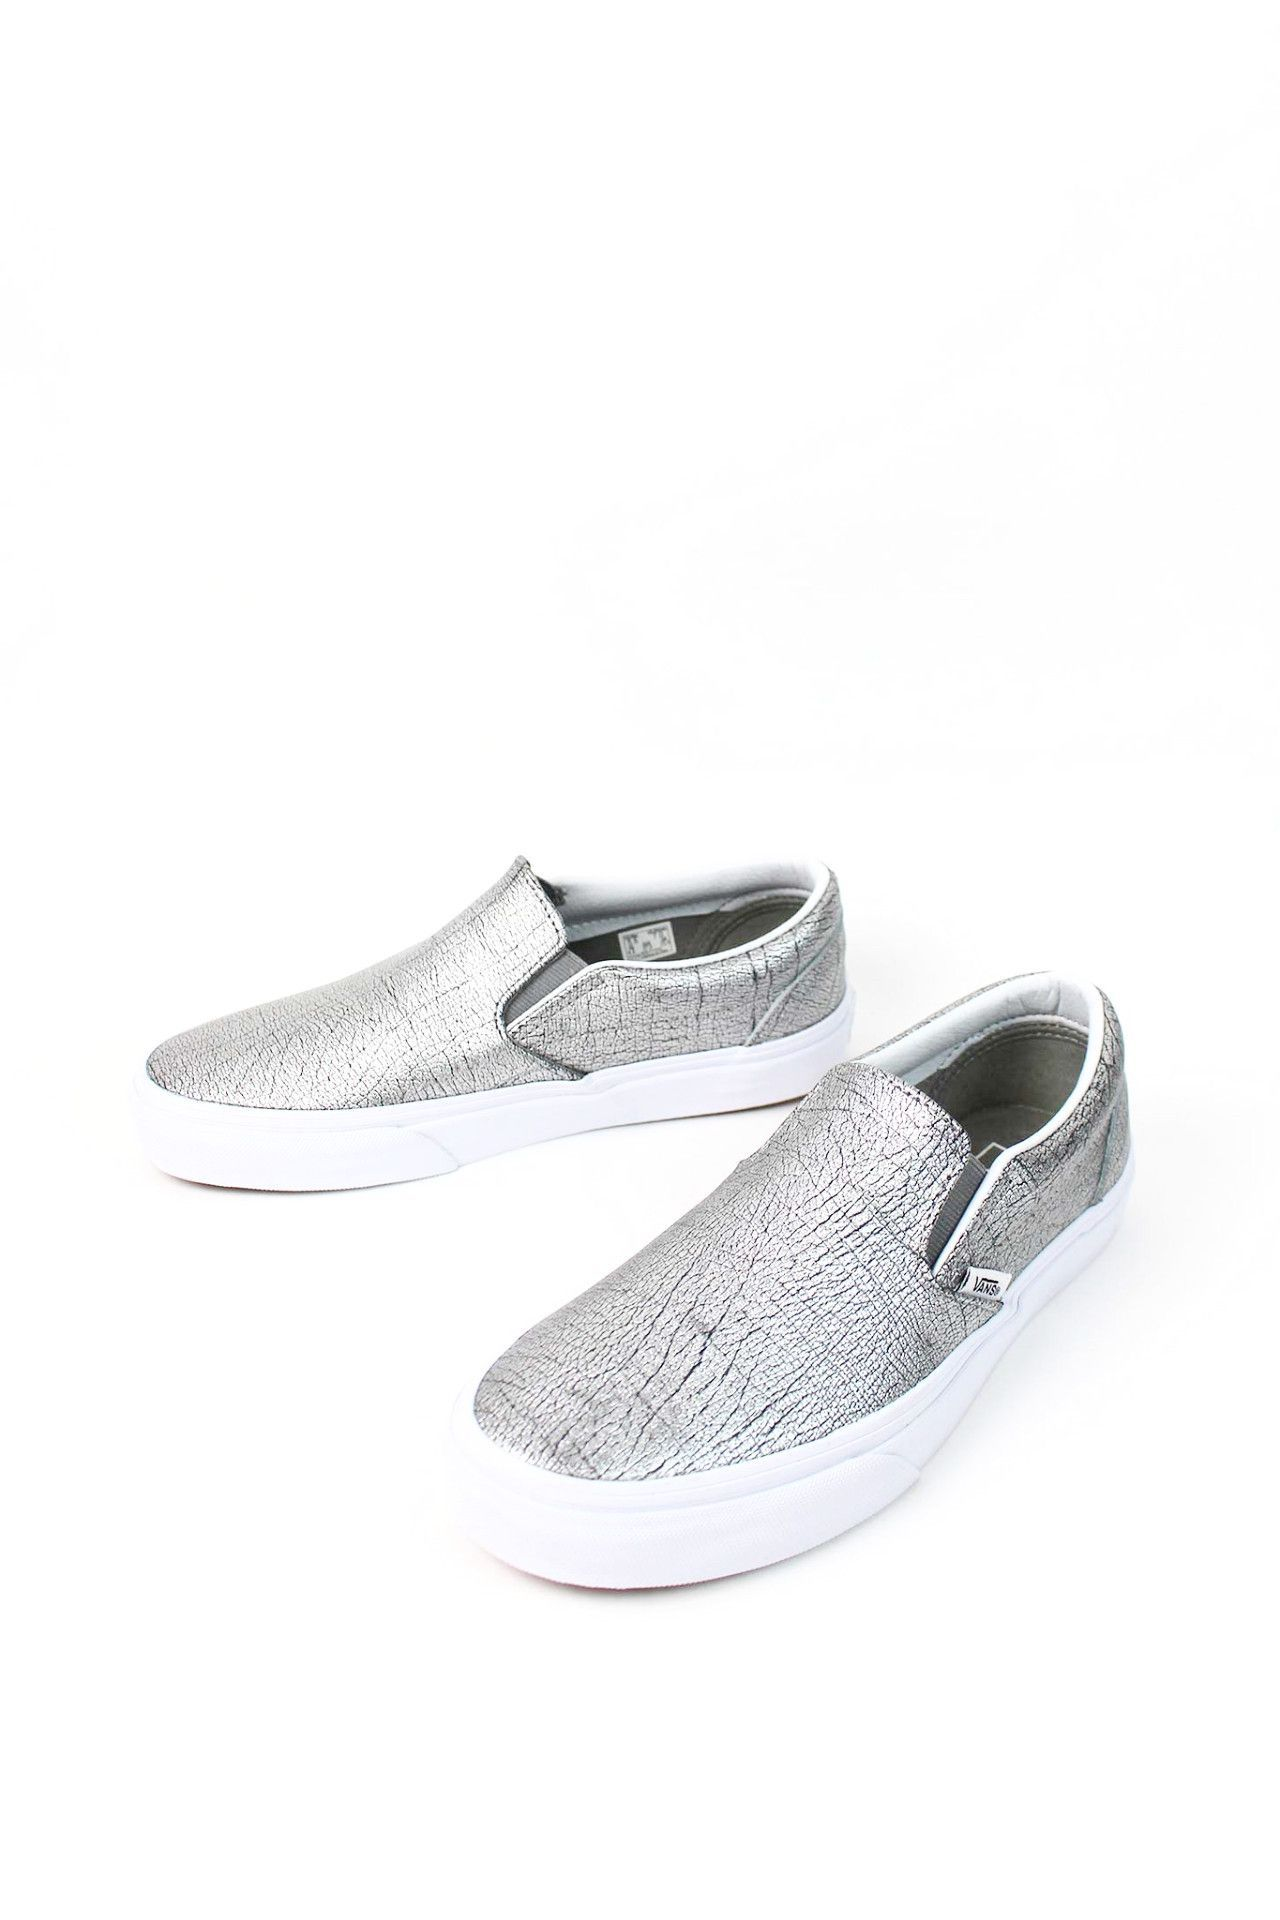 7acfcdf4e5 Vans The Foil Metallic Classic Slip-On features low profile slip-on leather  uppers